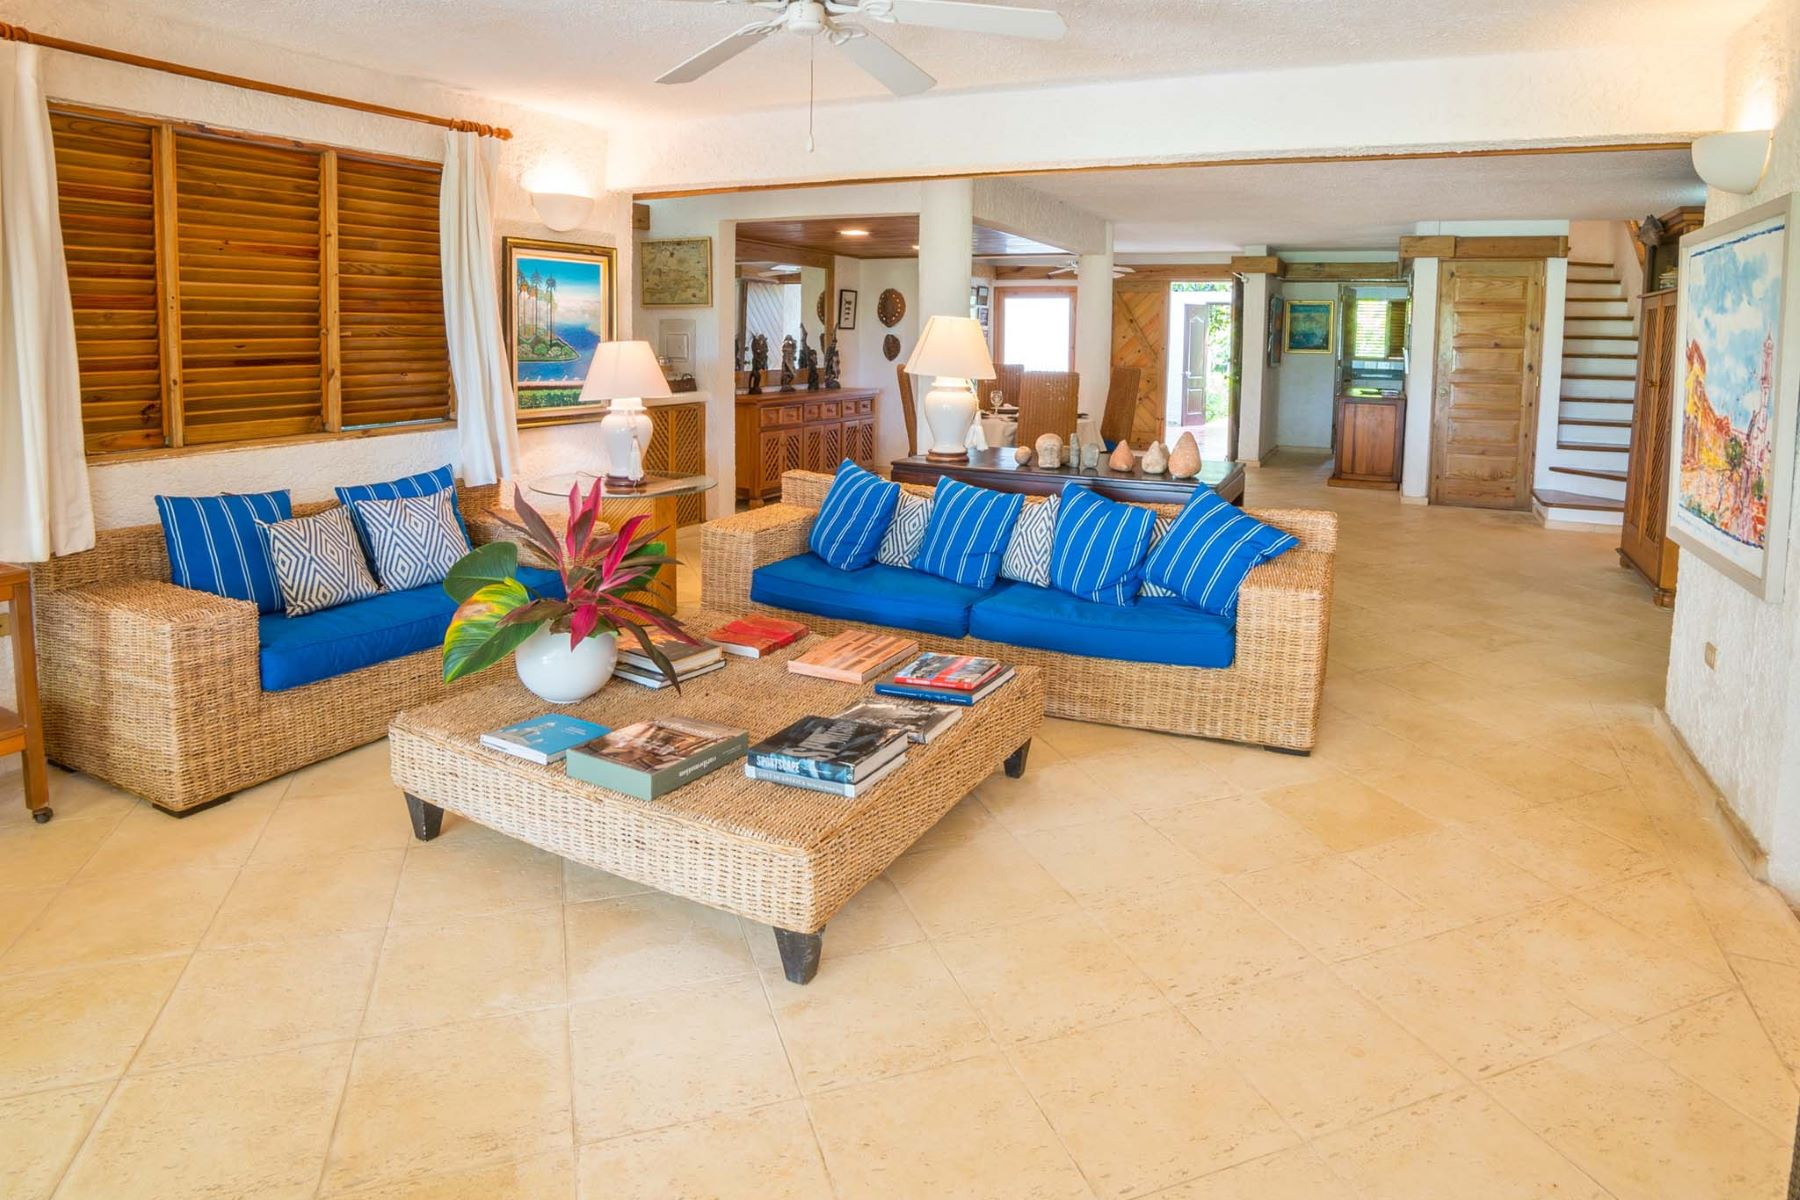 Single Family Home for Sale at Large and Spacious 4-bedroom residence with Vibrant Views Casa De Campo, La Romana Dominican Republic